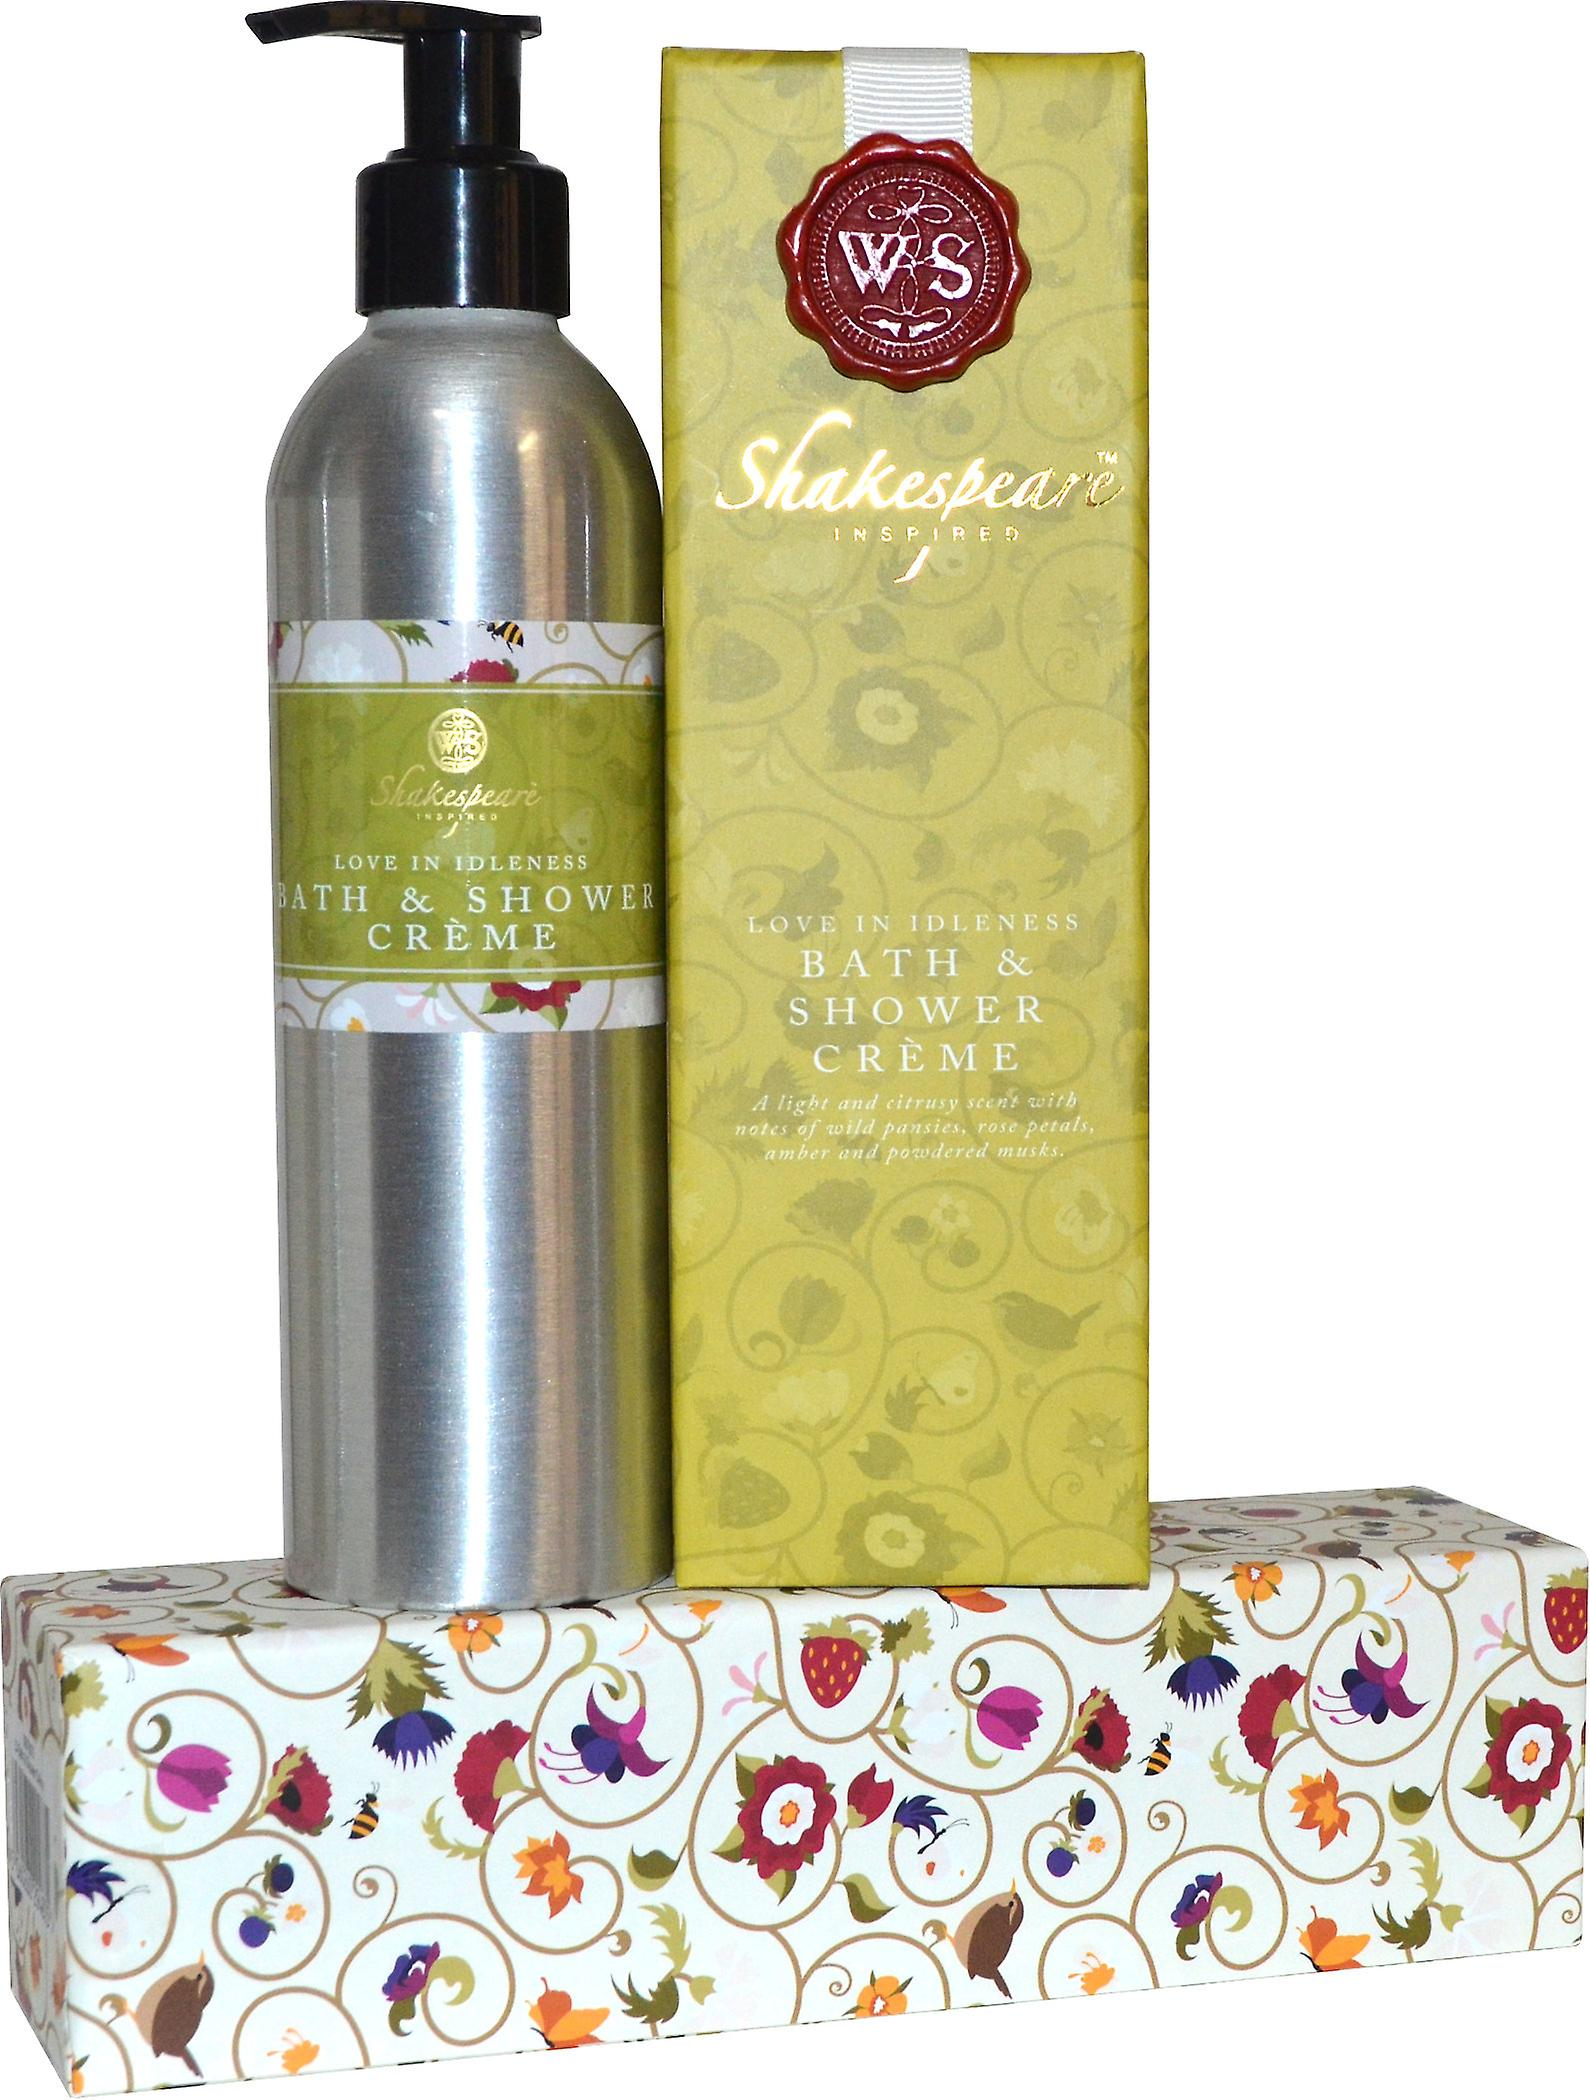 Shakespeare Inspired Love in Idelness Bath and Shower Creme 250ml